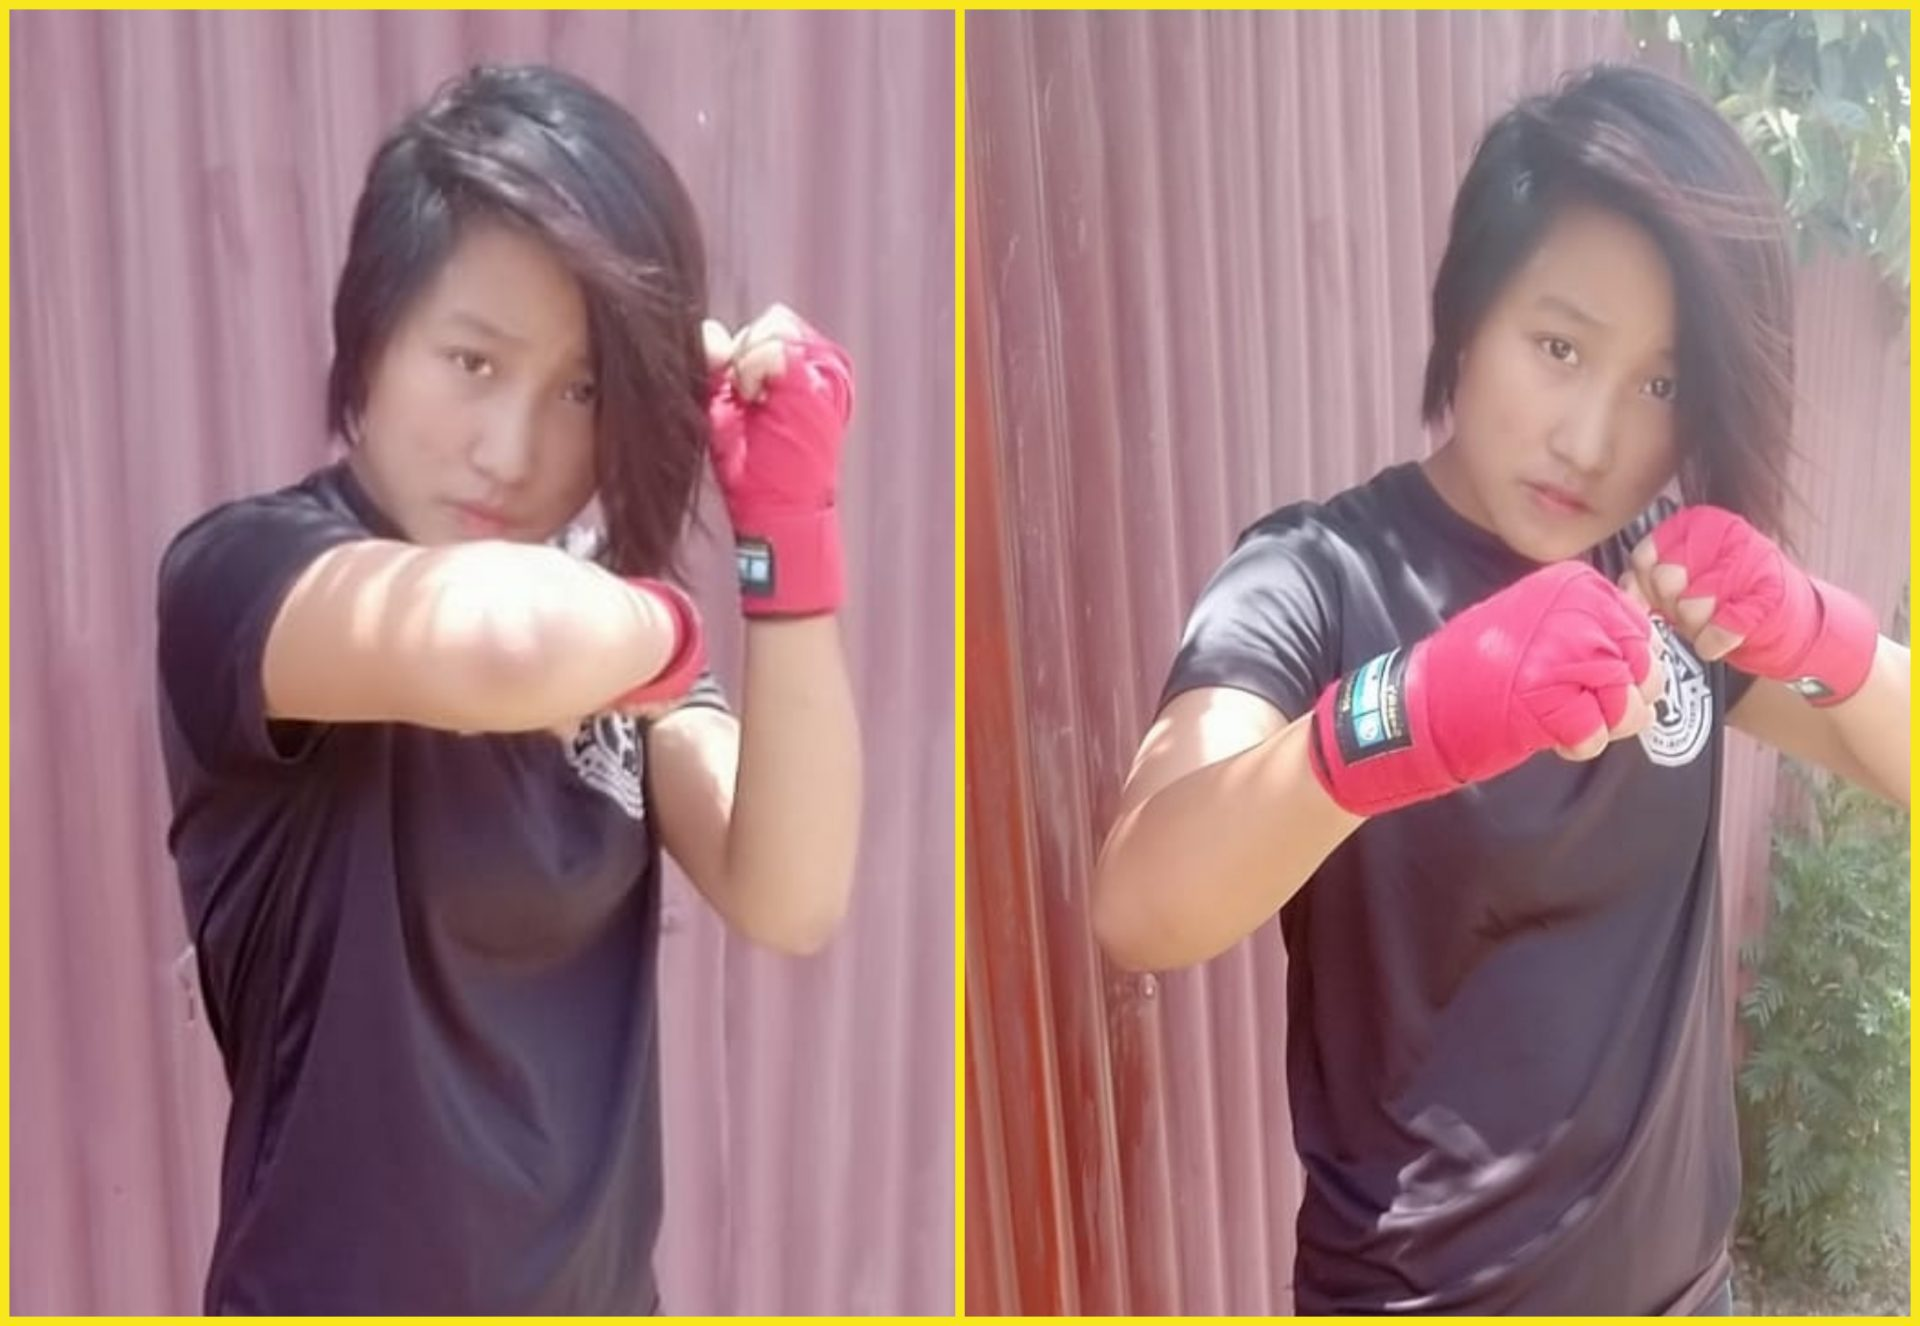 Meet Roshni Chanu, the Manipuri MMA fighter who turned professional at 15-years old - Roshni Chanu